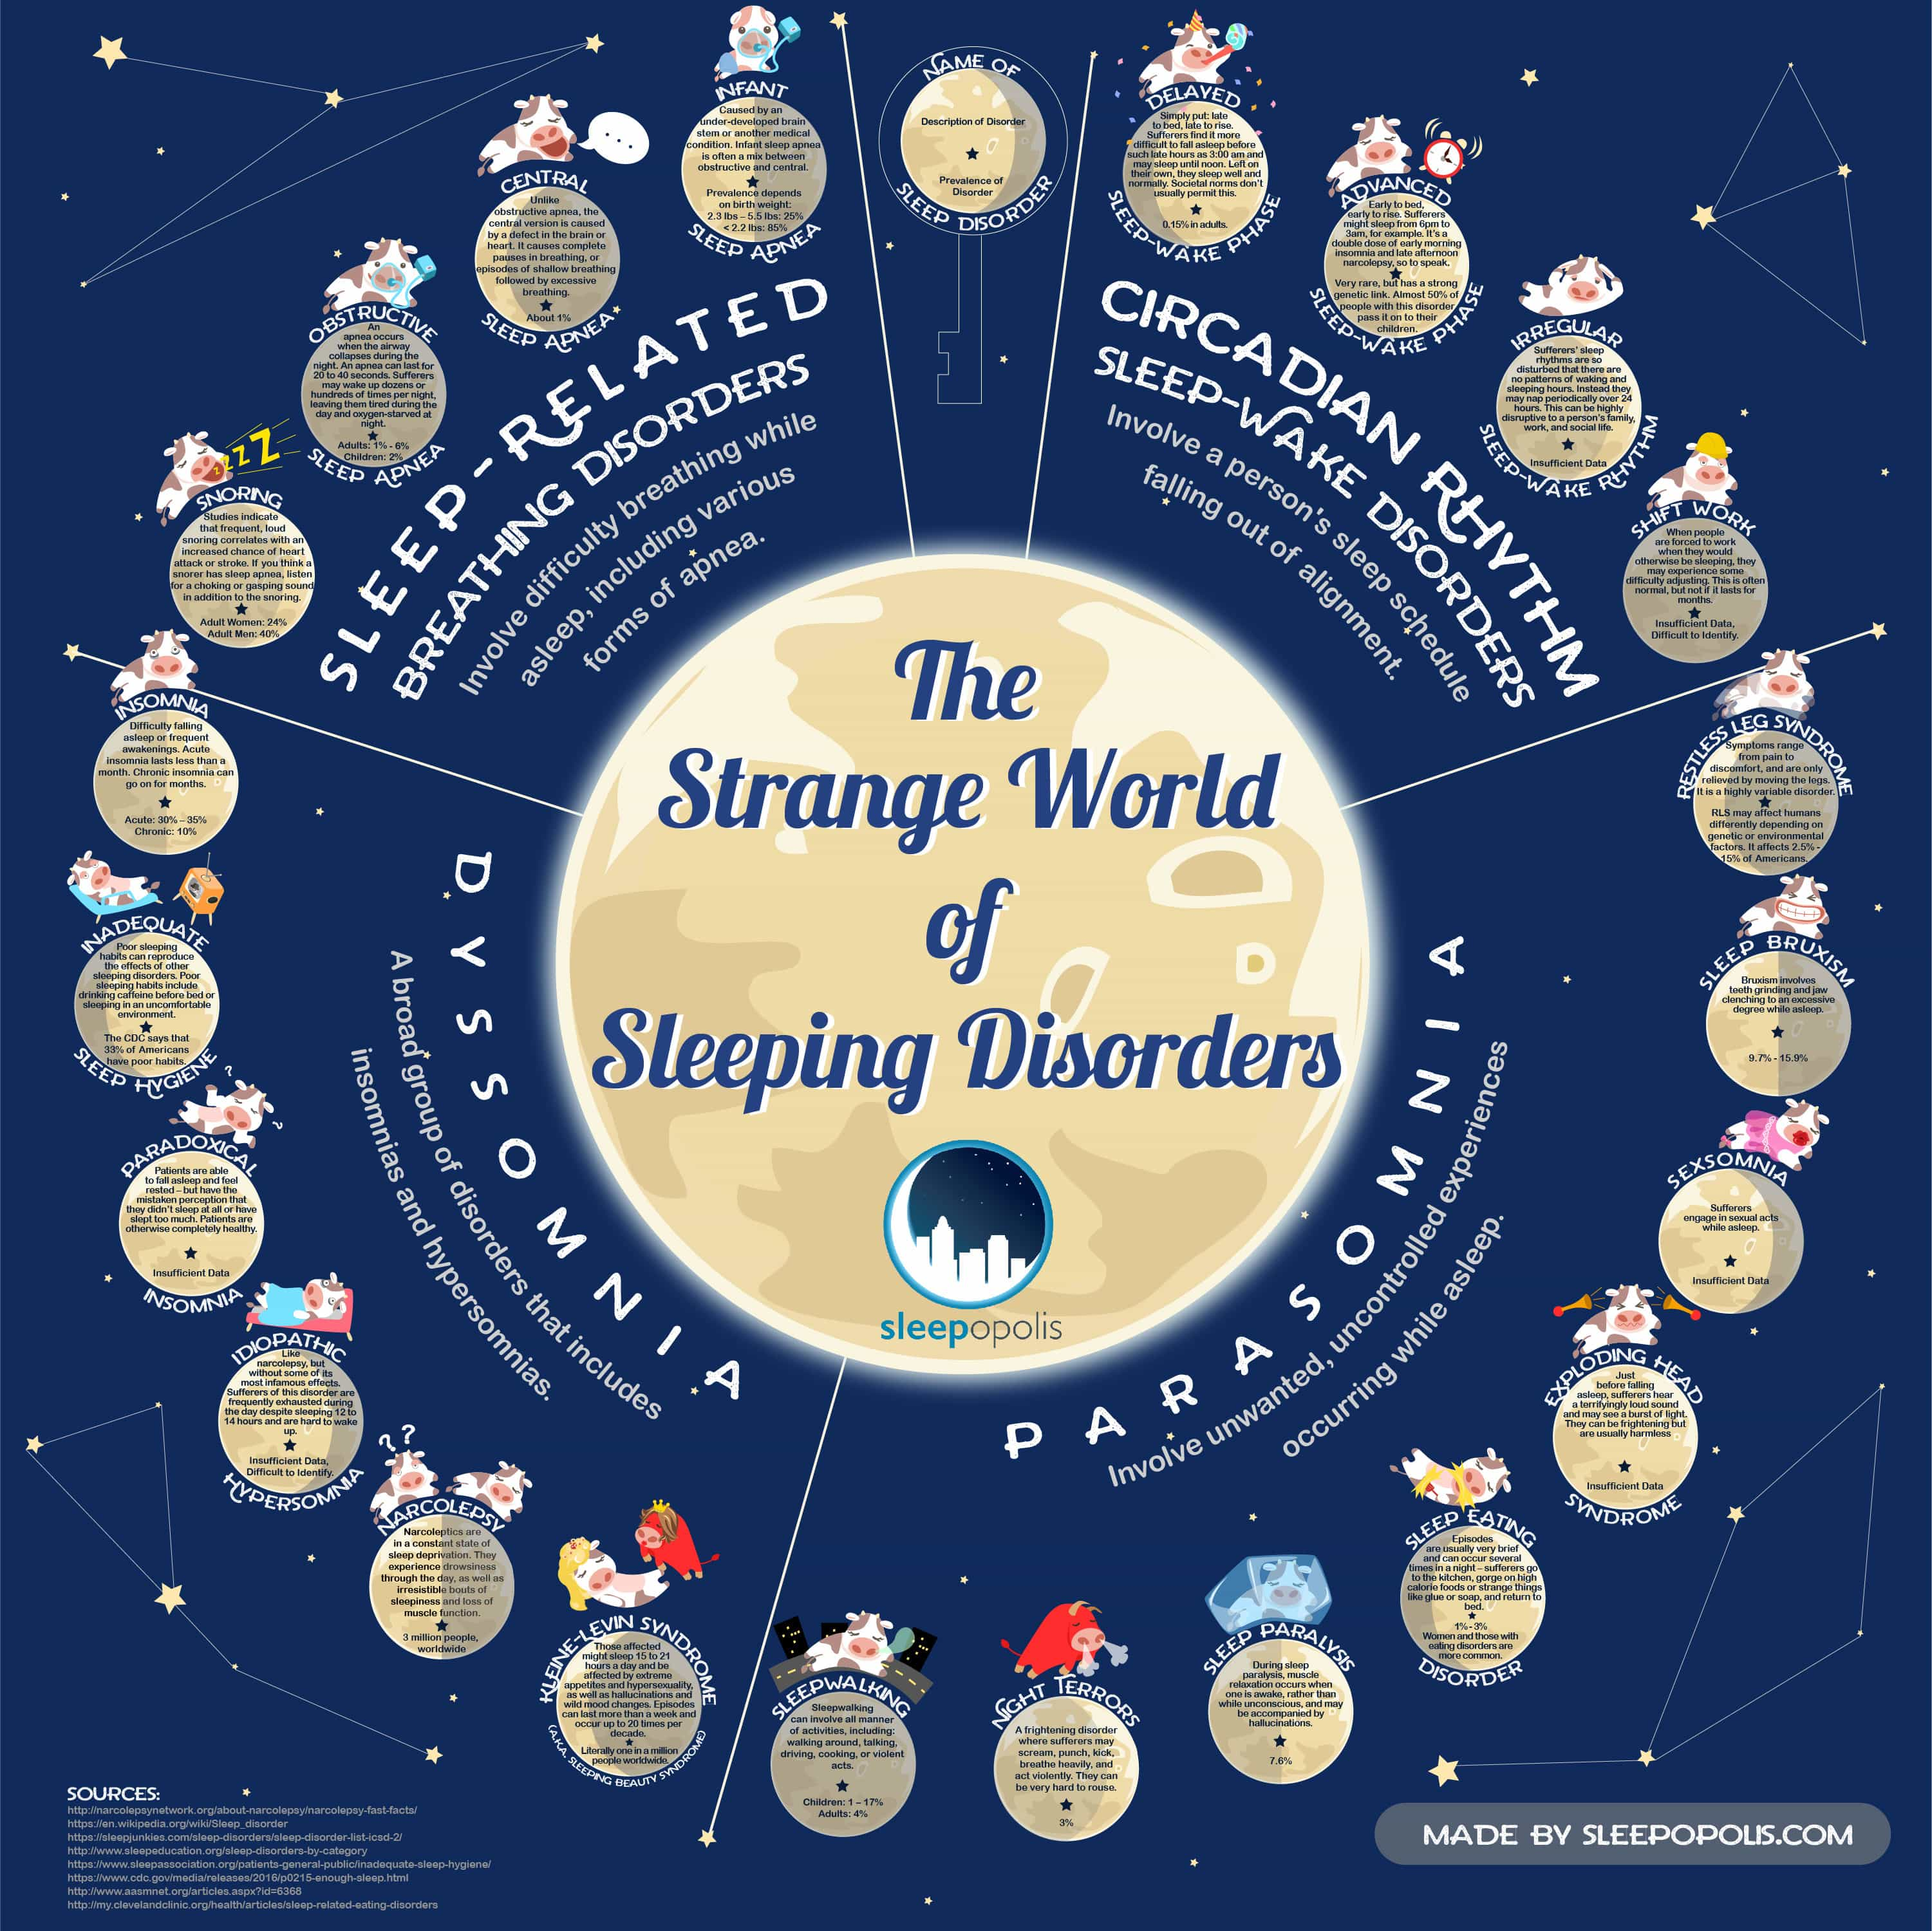 The Strange World of Sleep Disorders